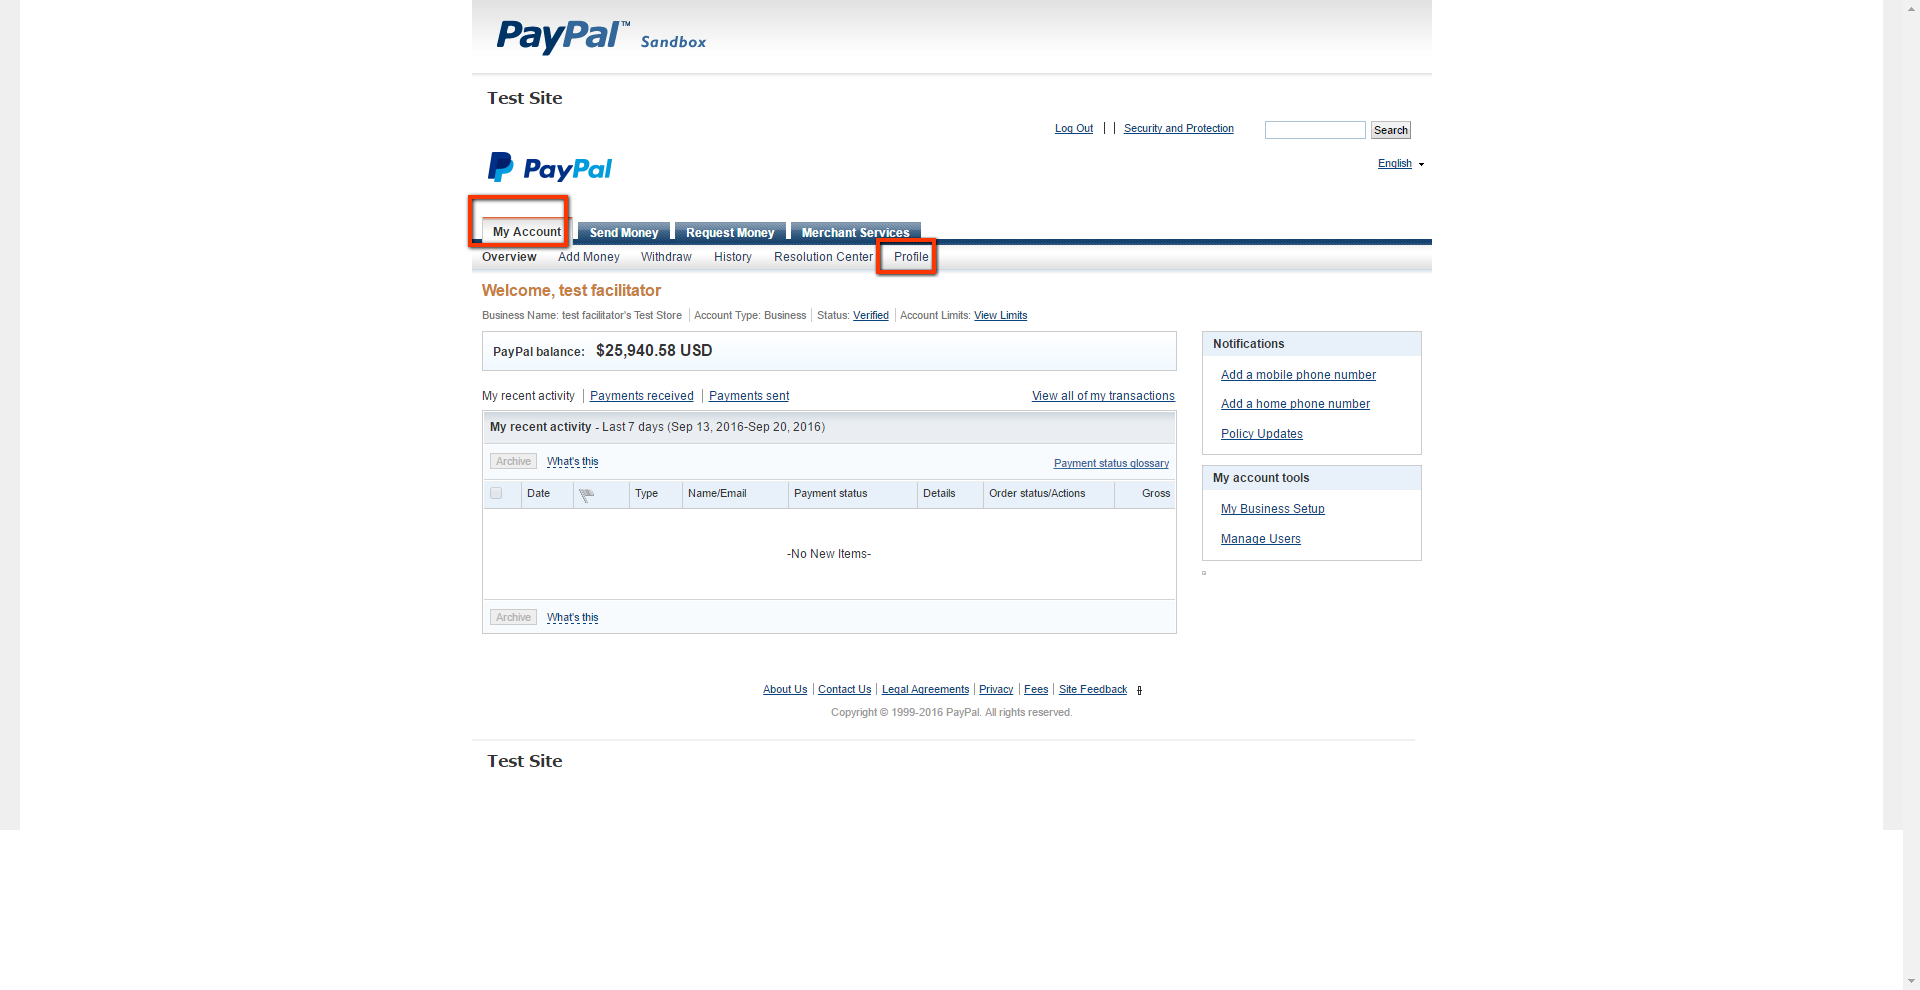 PayPal Website Payments Pro - How to obtain your API credentials